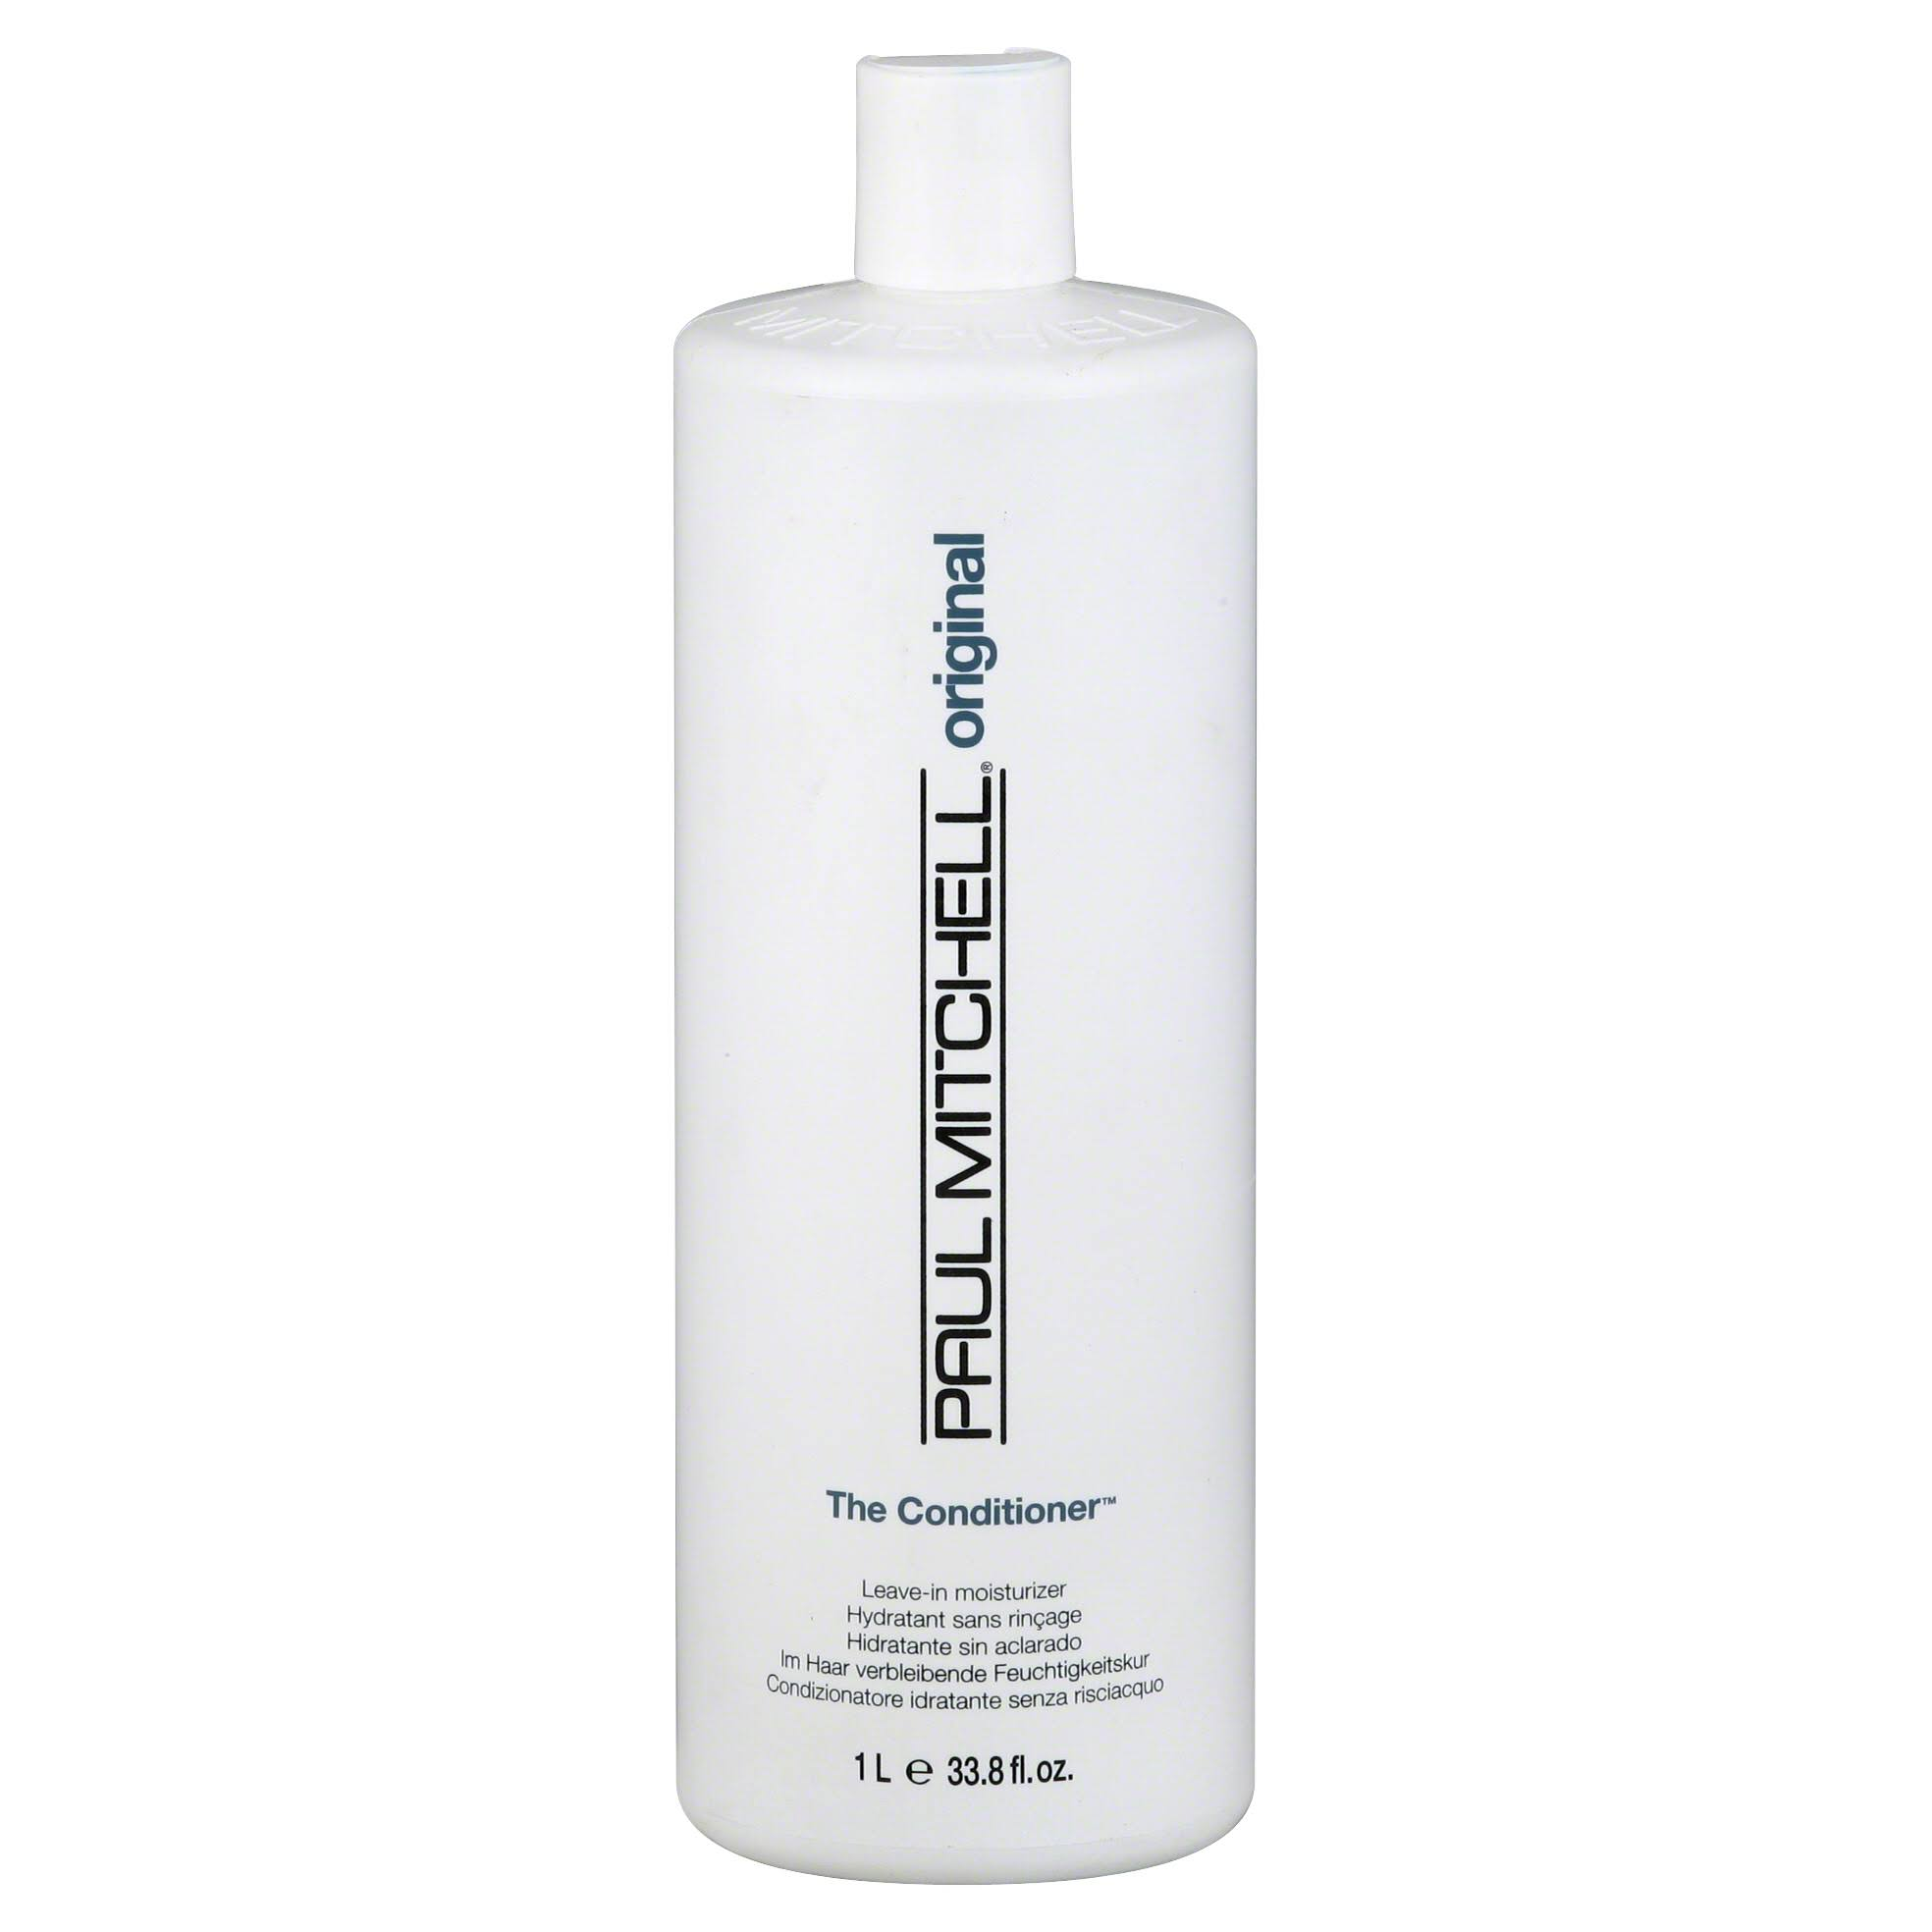 Paul Mitchell The Conditioner Moisturizer Leave-In